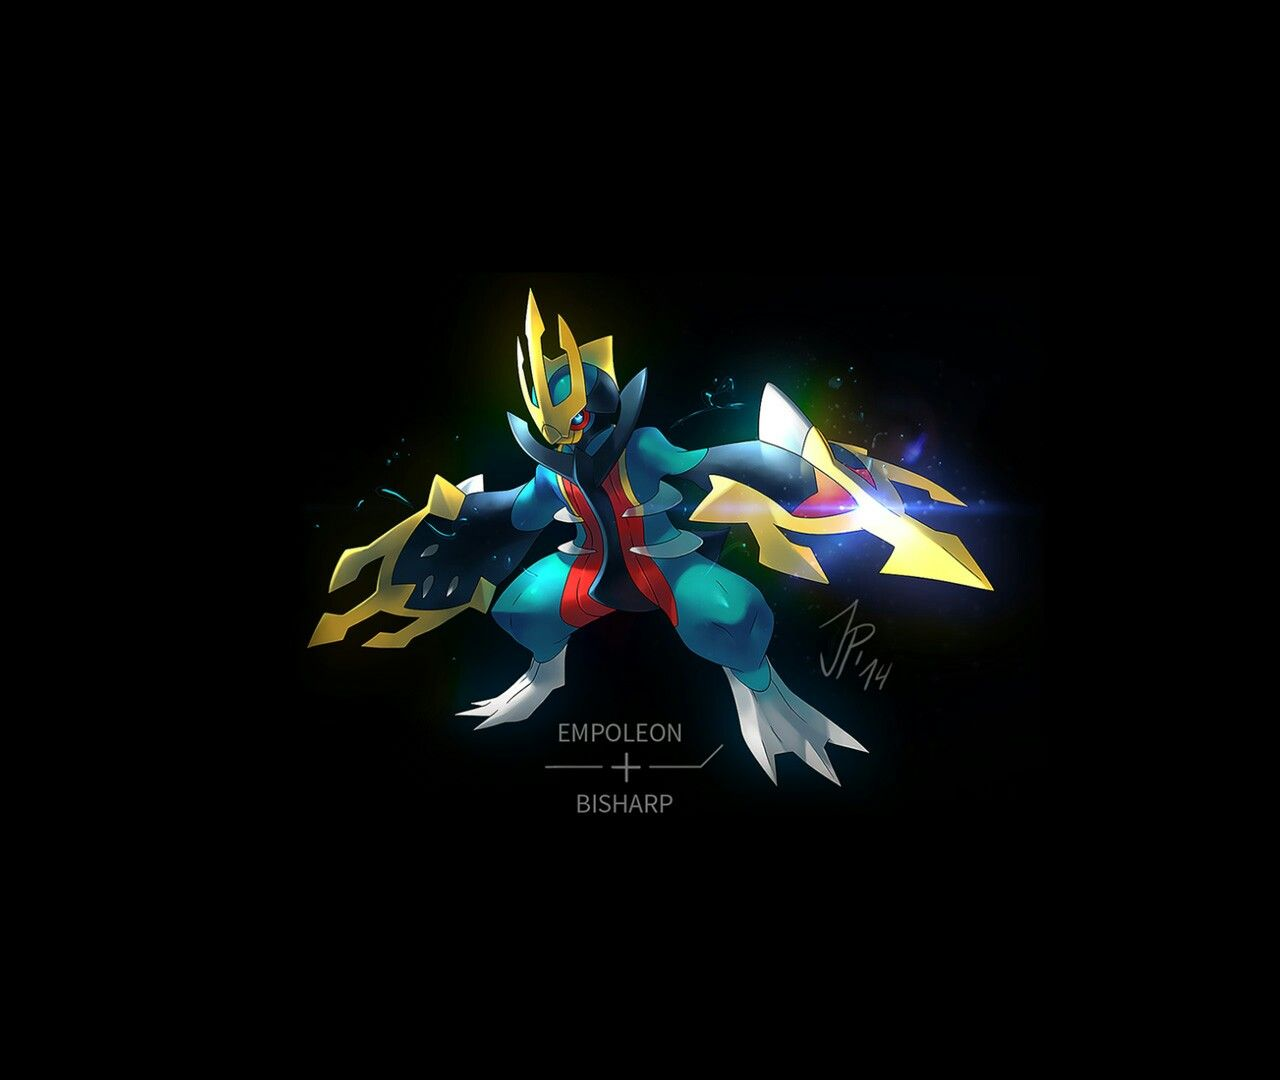 empoleon bisharp pokemon pinterest pokémon and pokemon fusion